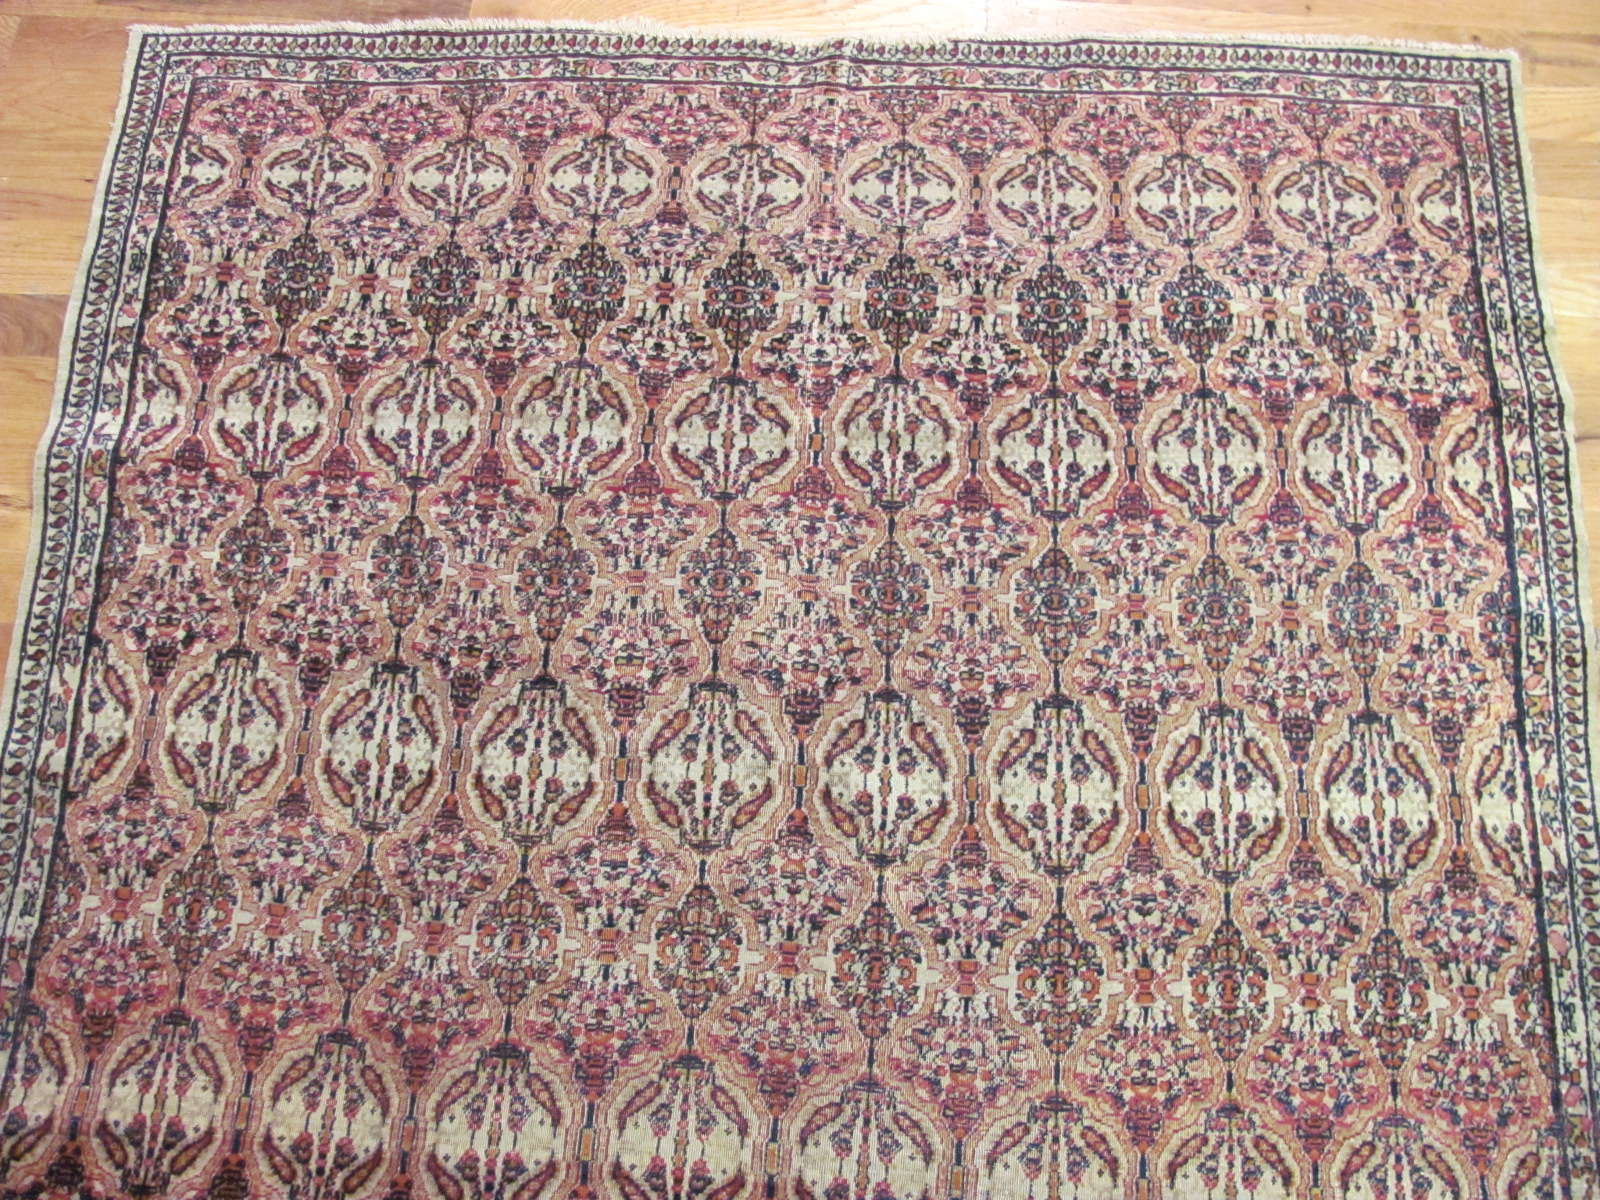 24583 antique persian kerman lavar rug 4 x 6,7 -1